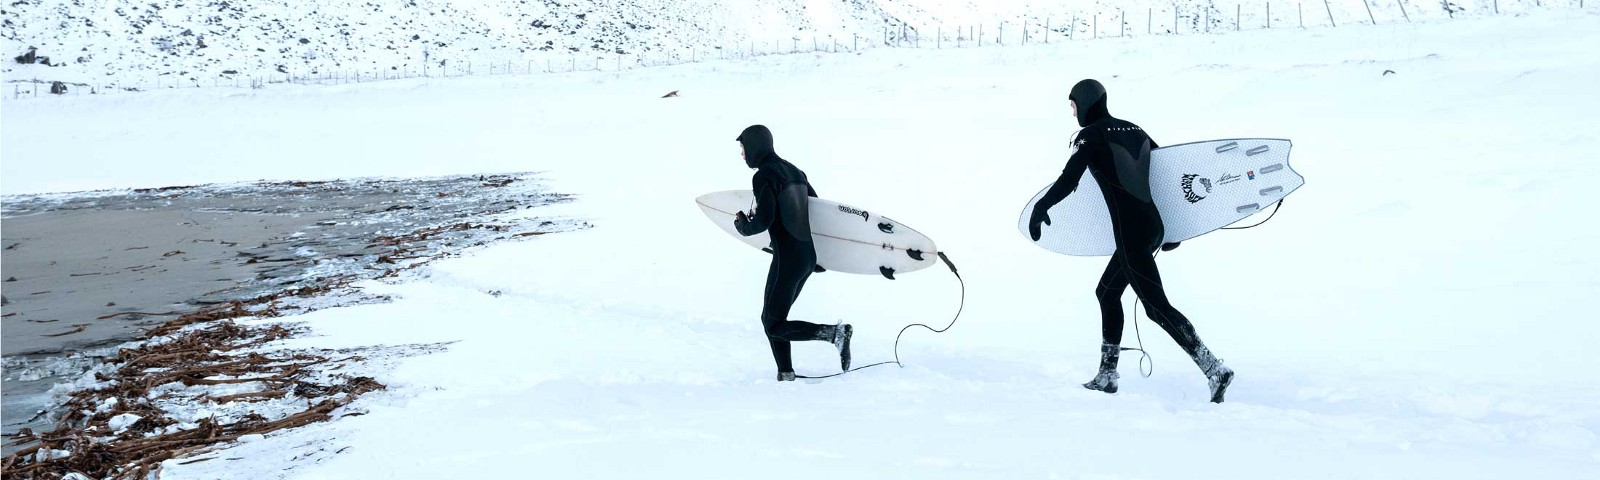 Surfers run across the snow toward Unstad beach in Norway.